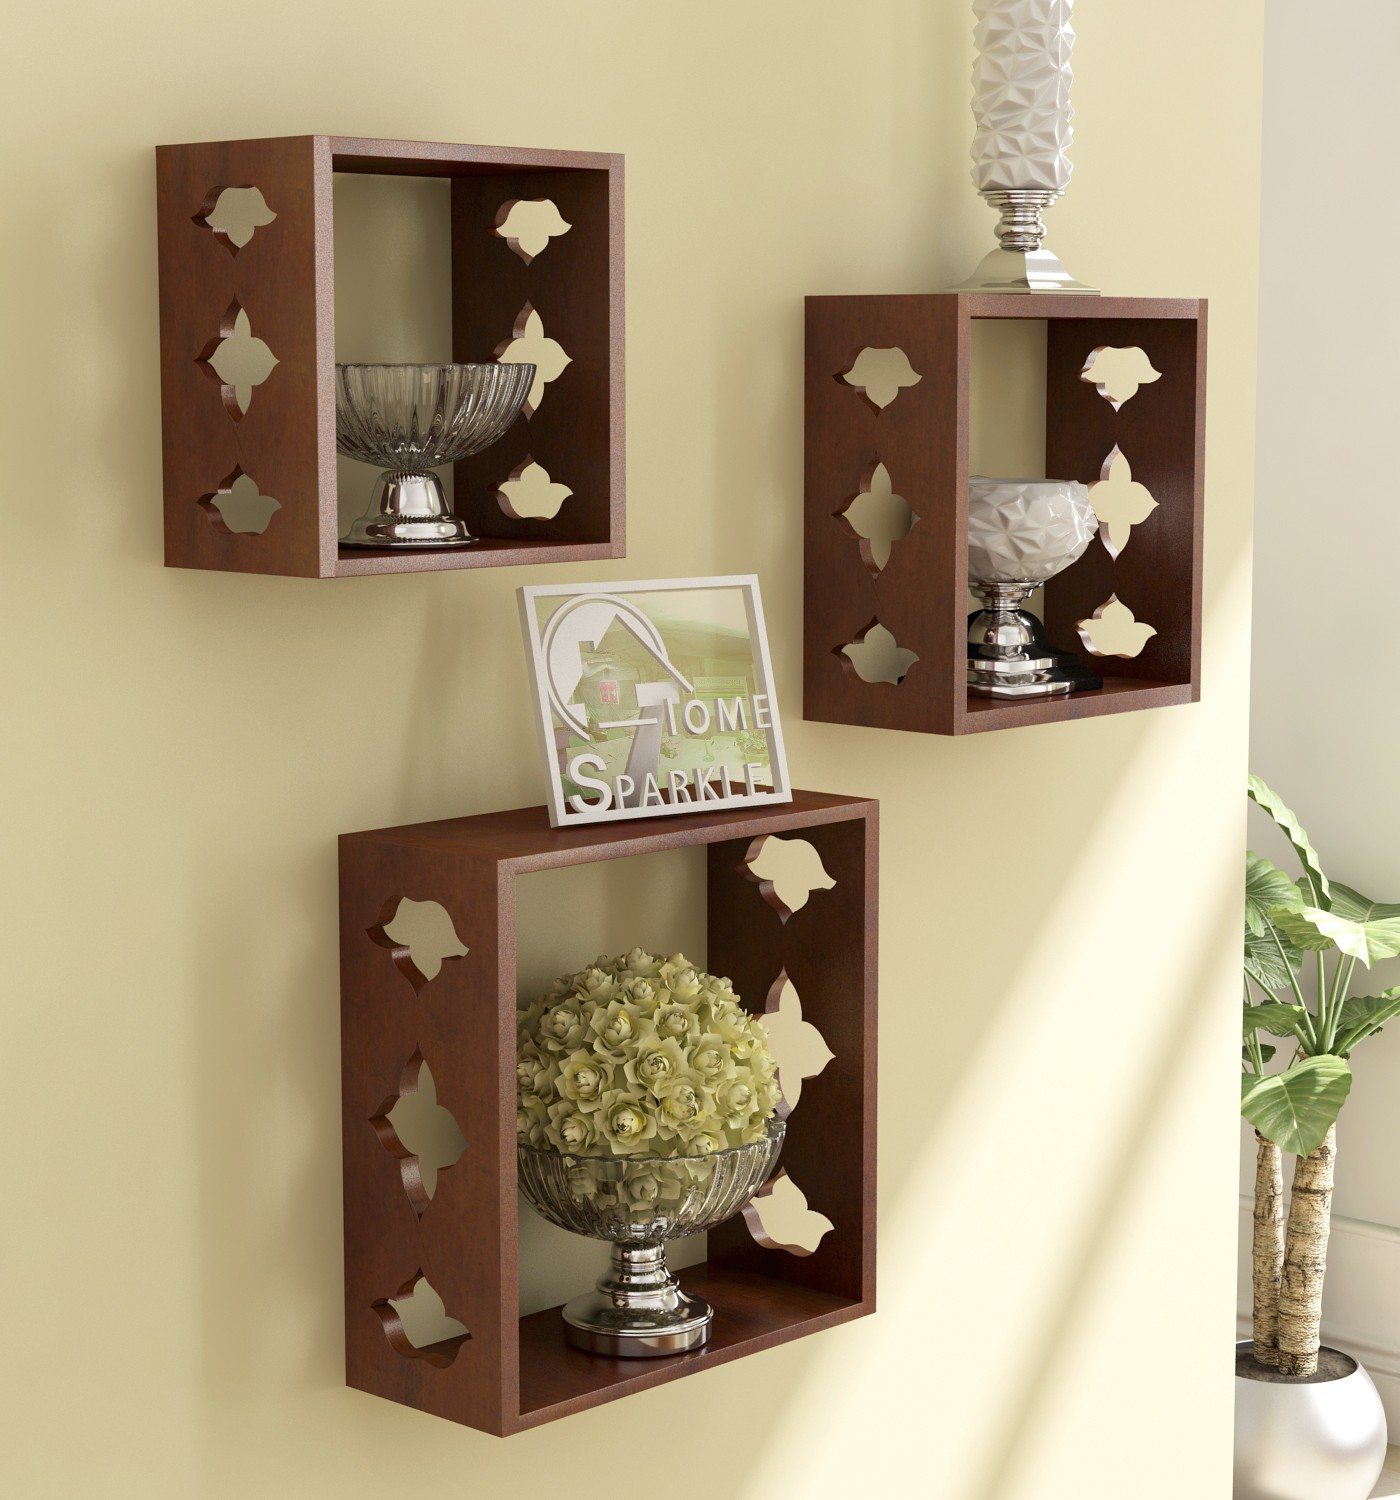 View Home Sparkle 3 Cube Shelves Wooden Wall Shelf(Number of Shelves - 3, Brown) Furniture (Home Sparkle)